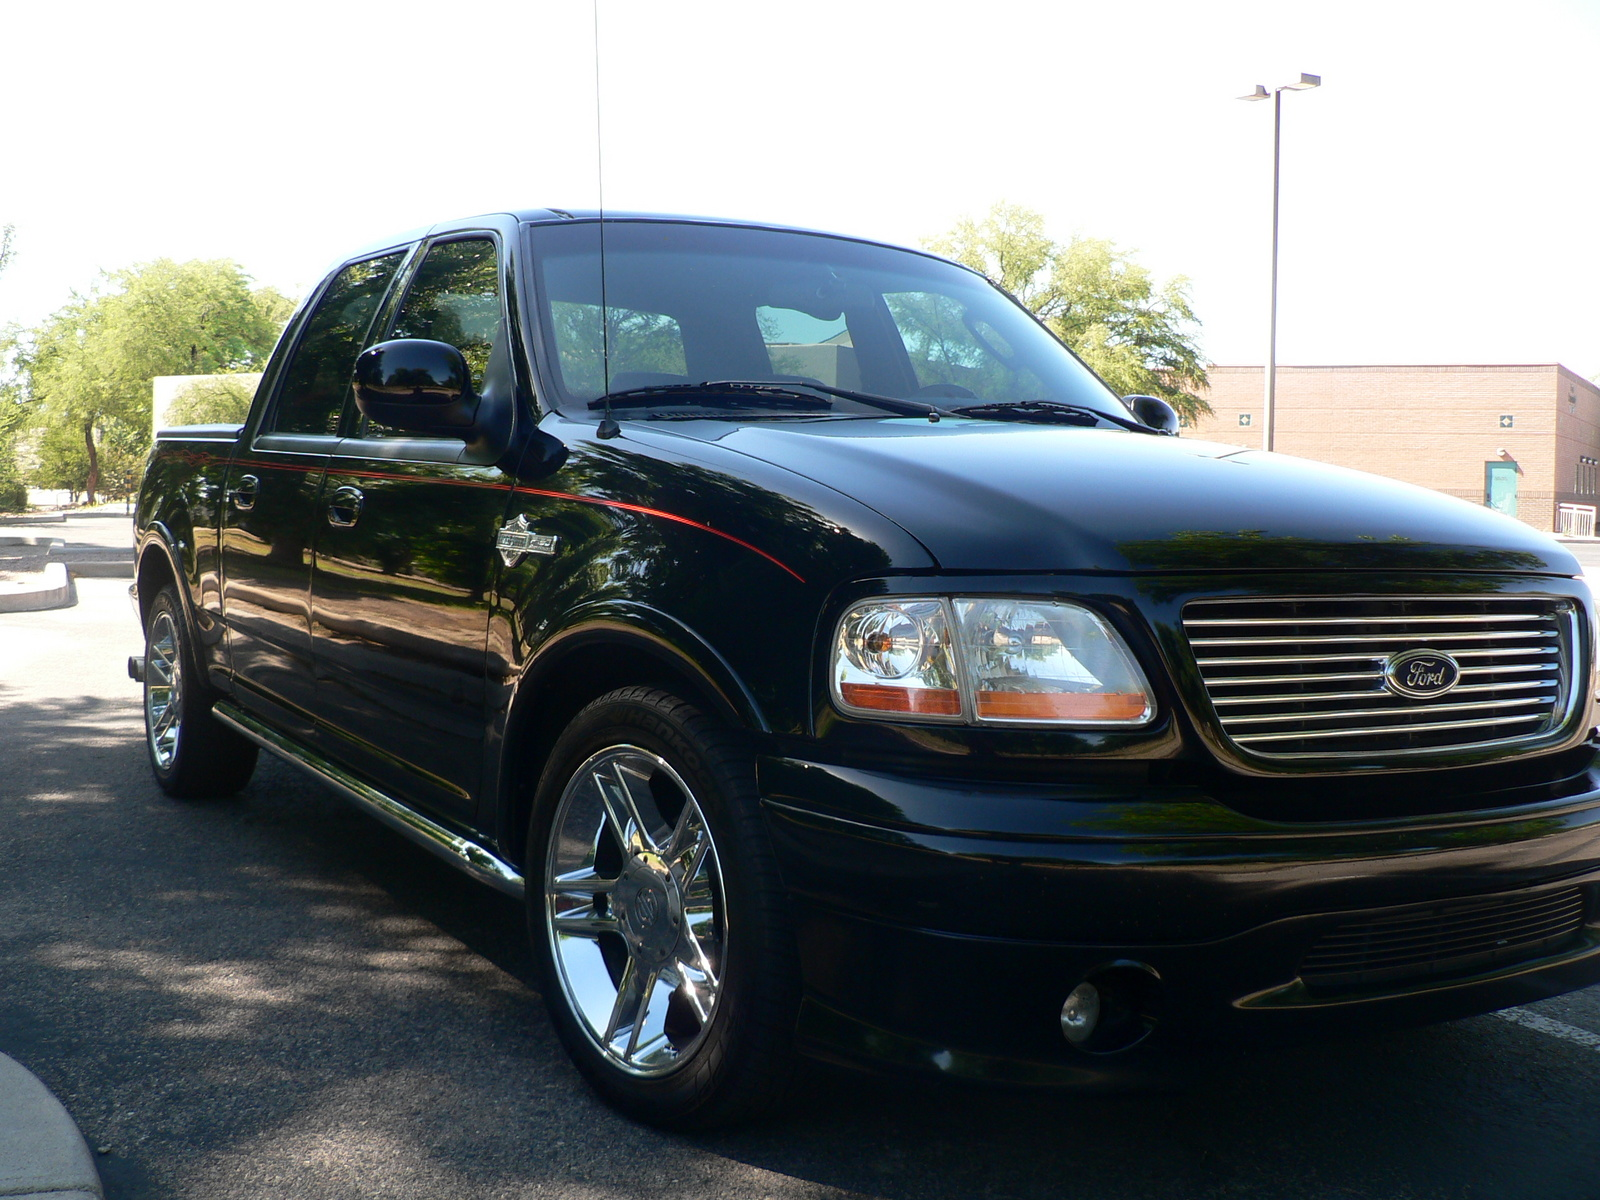 2007 ford f150 harley davidson supercharged specs autos post. Black Bedroom Furniture Sets. Home Design Ideas